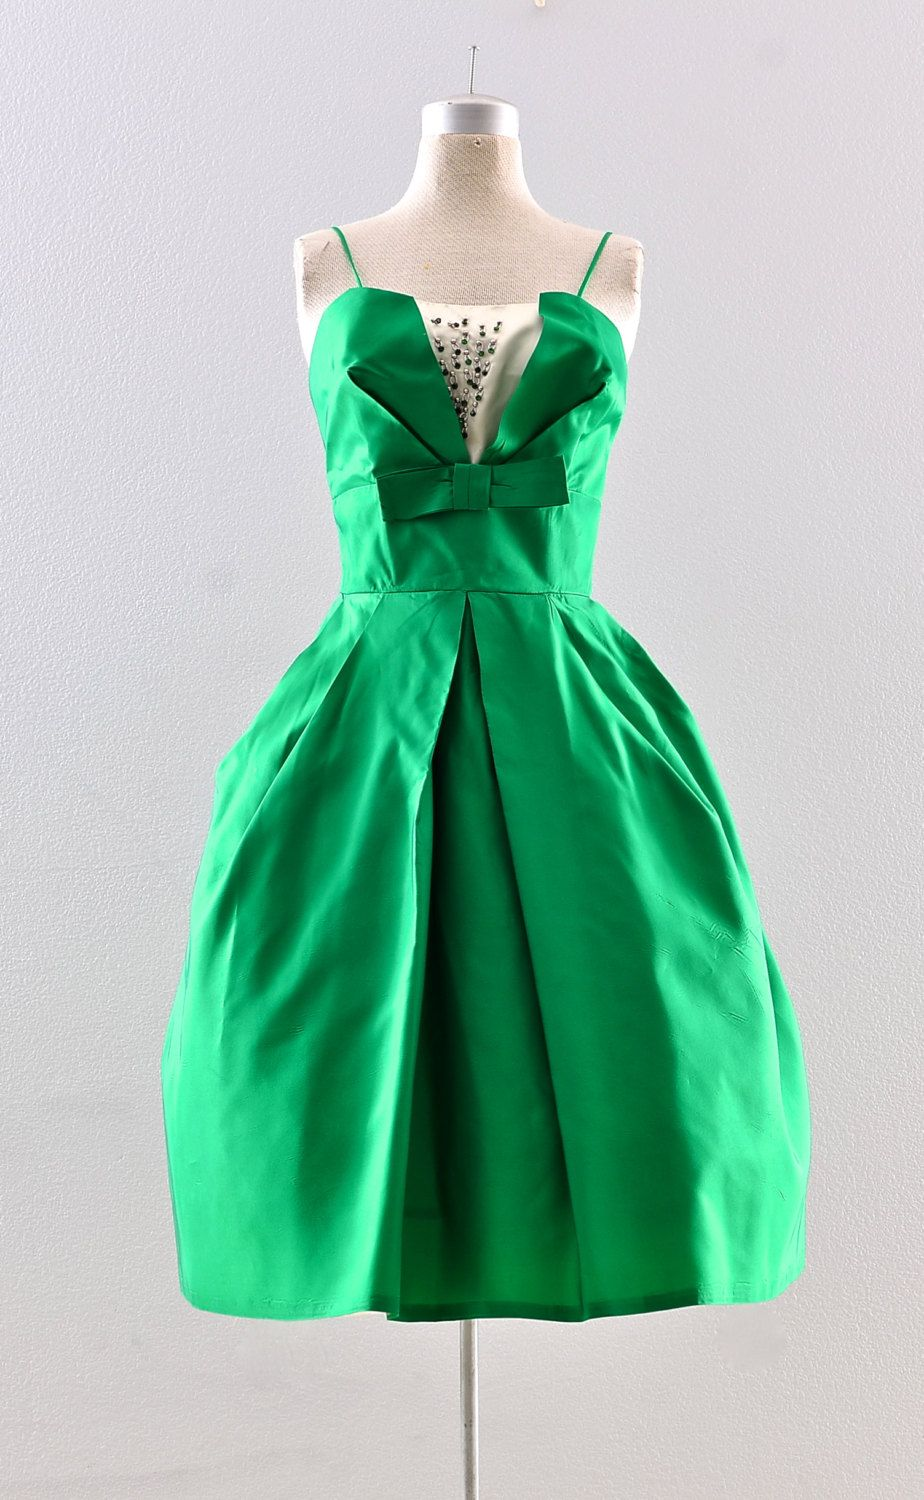 Vintage 1950s dress - emerald green party dress / 50s ball gown ...